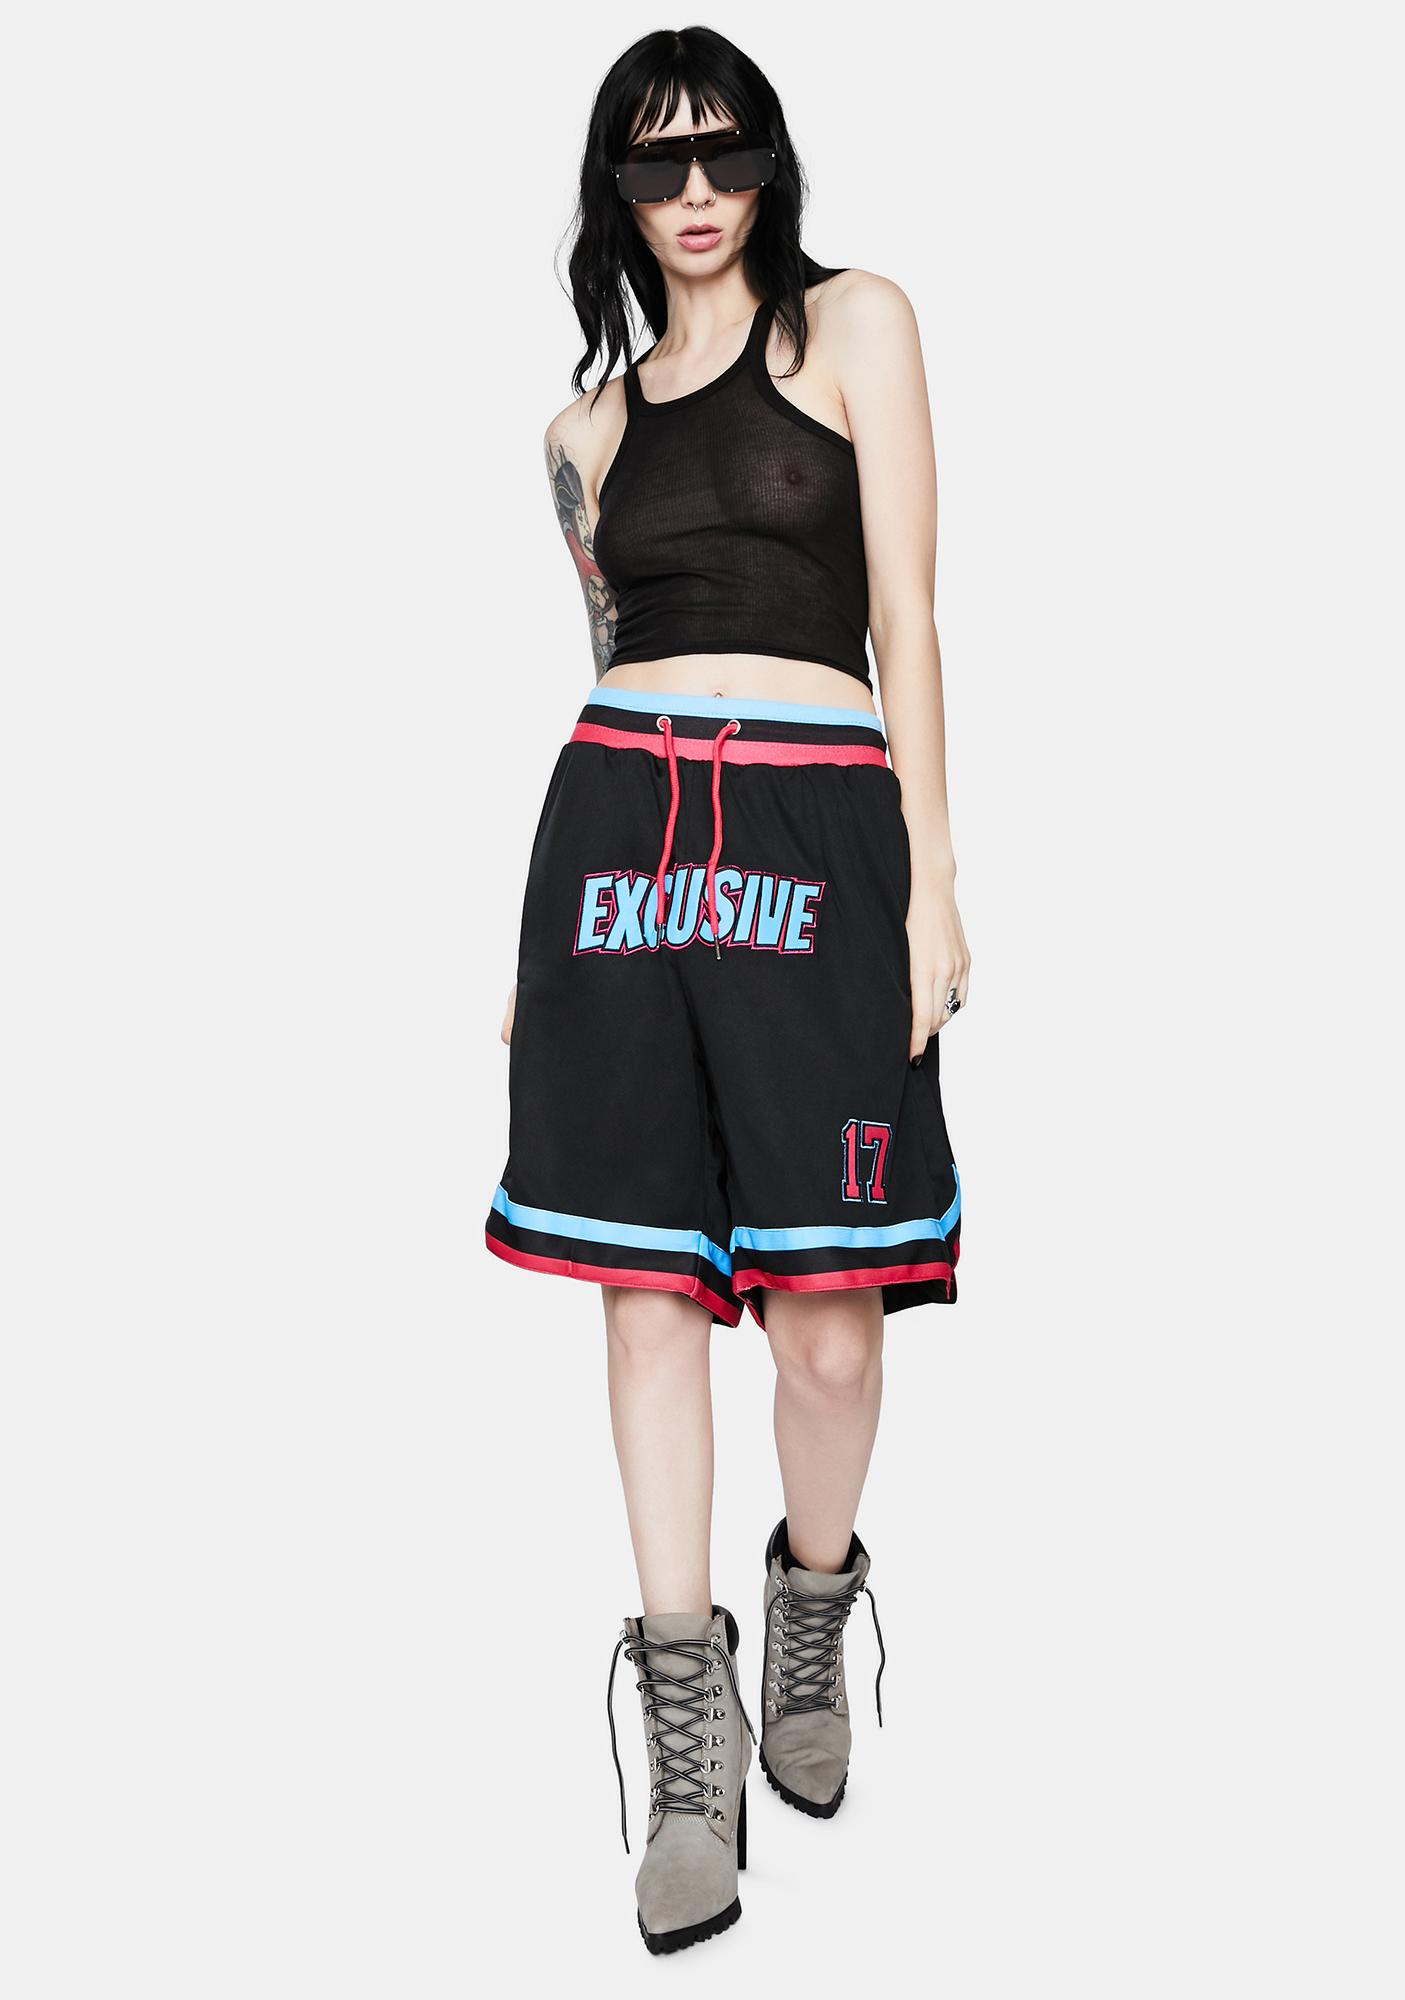 EXCLUSIVE DELIVERY CO. Exclusive Basketball Shorts